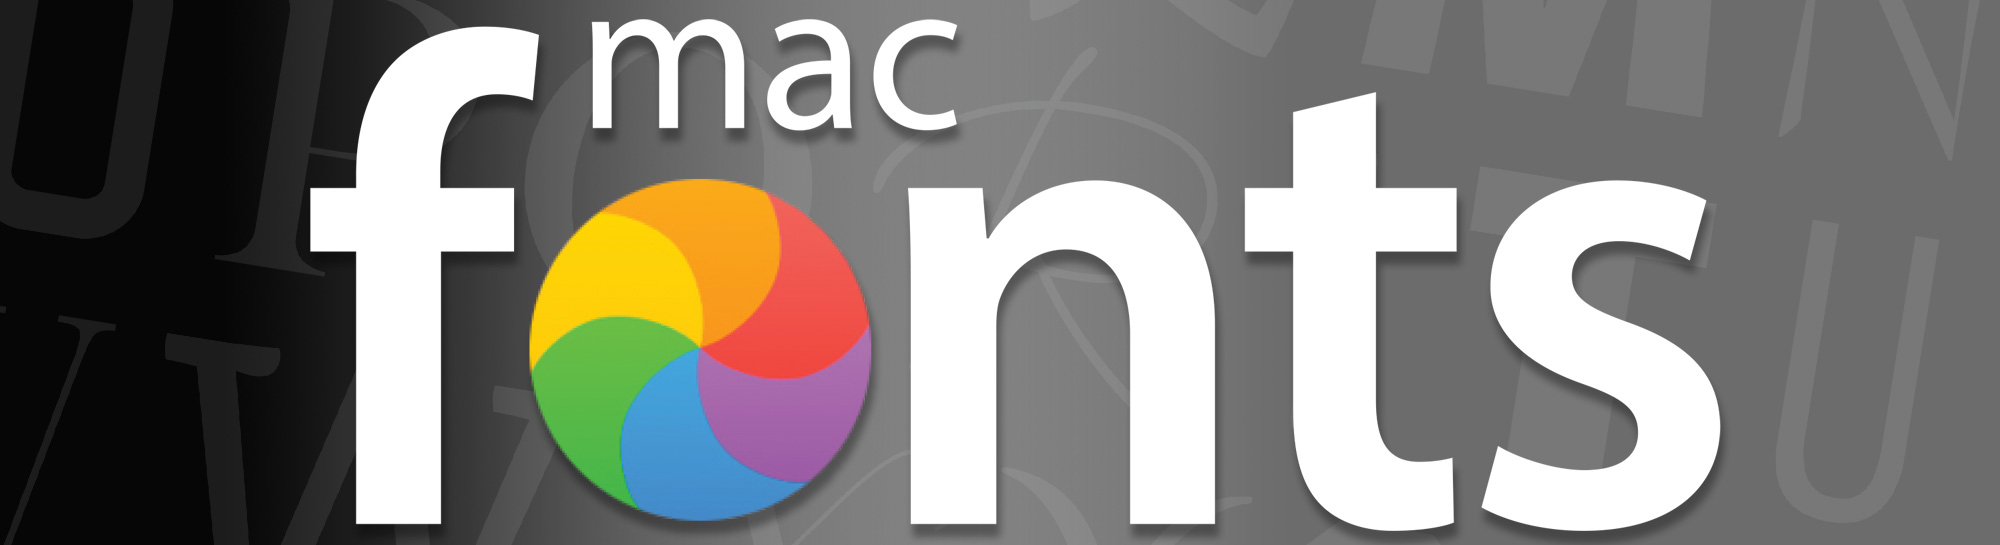 macFonts-banner-New